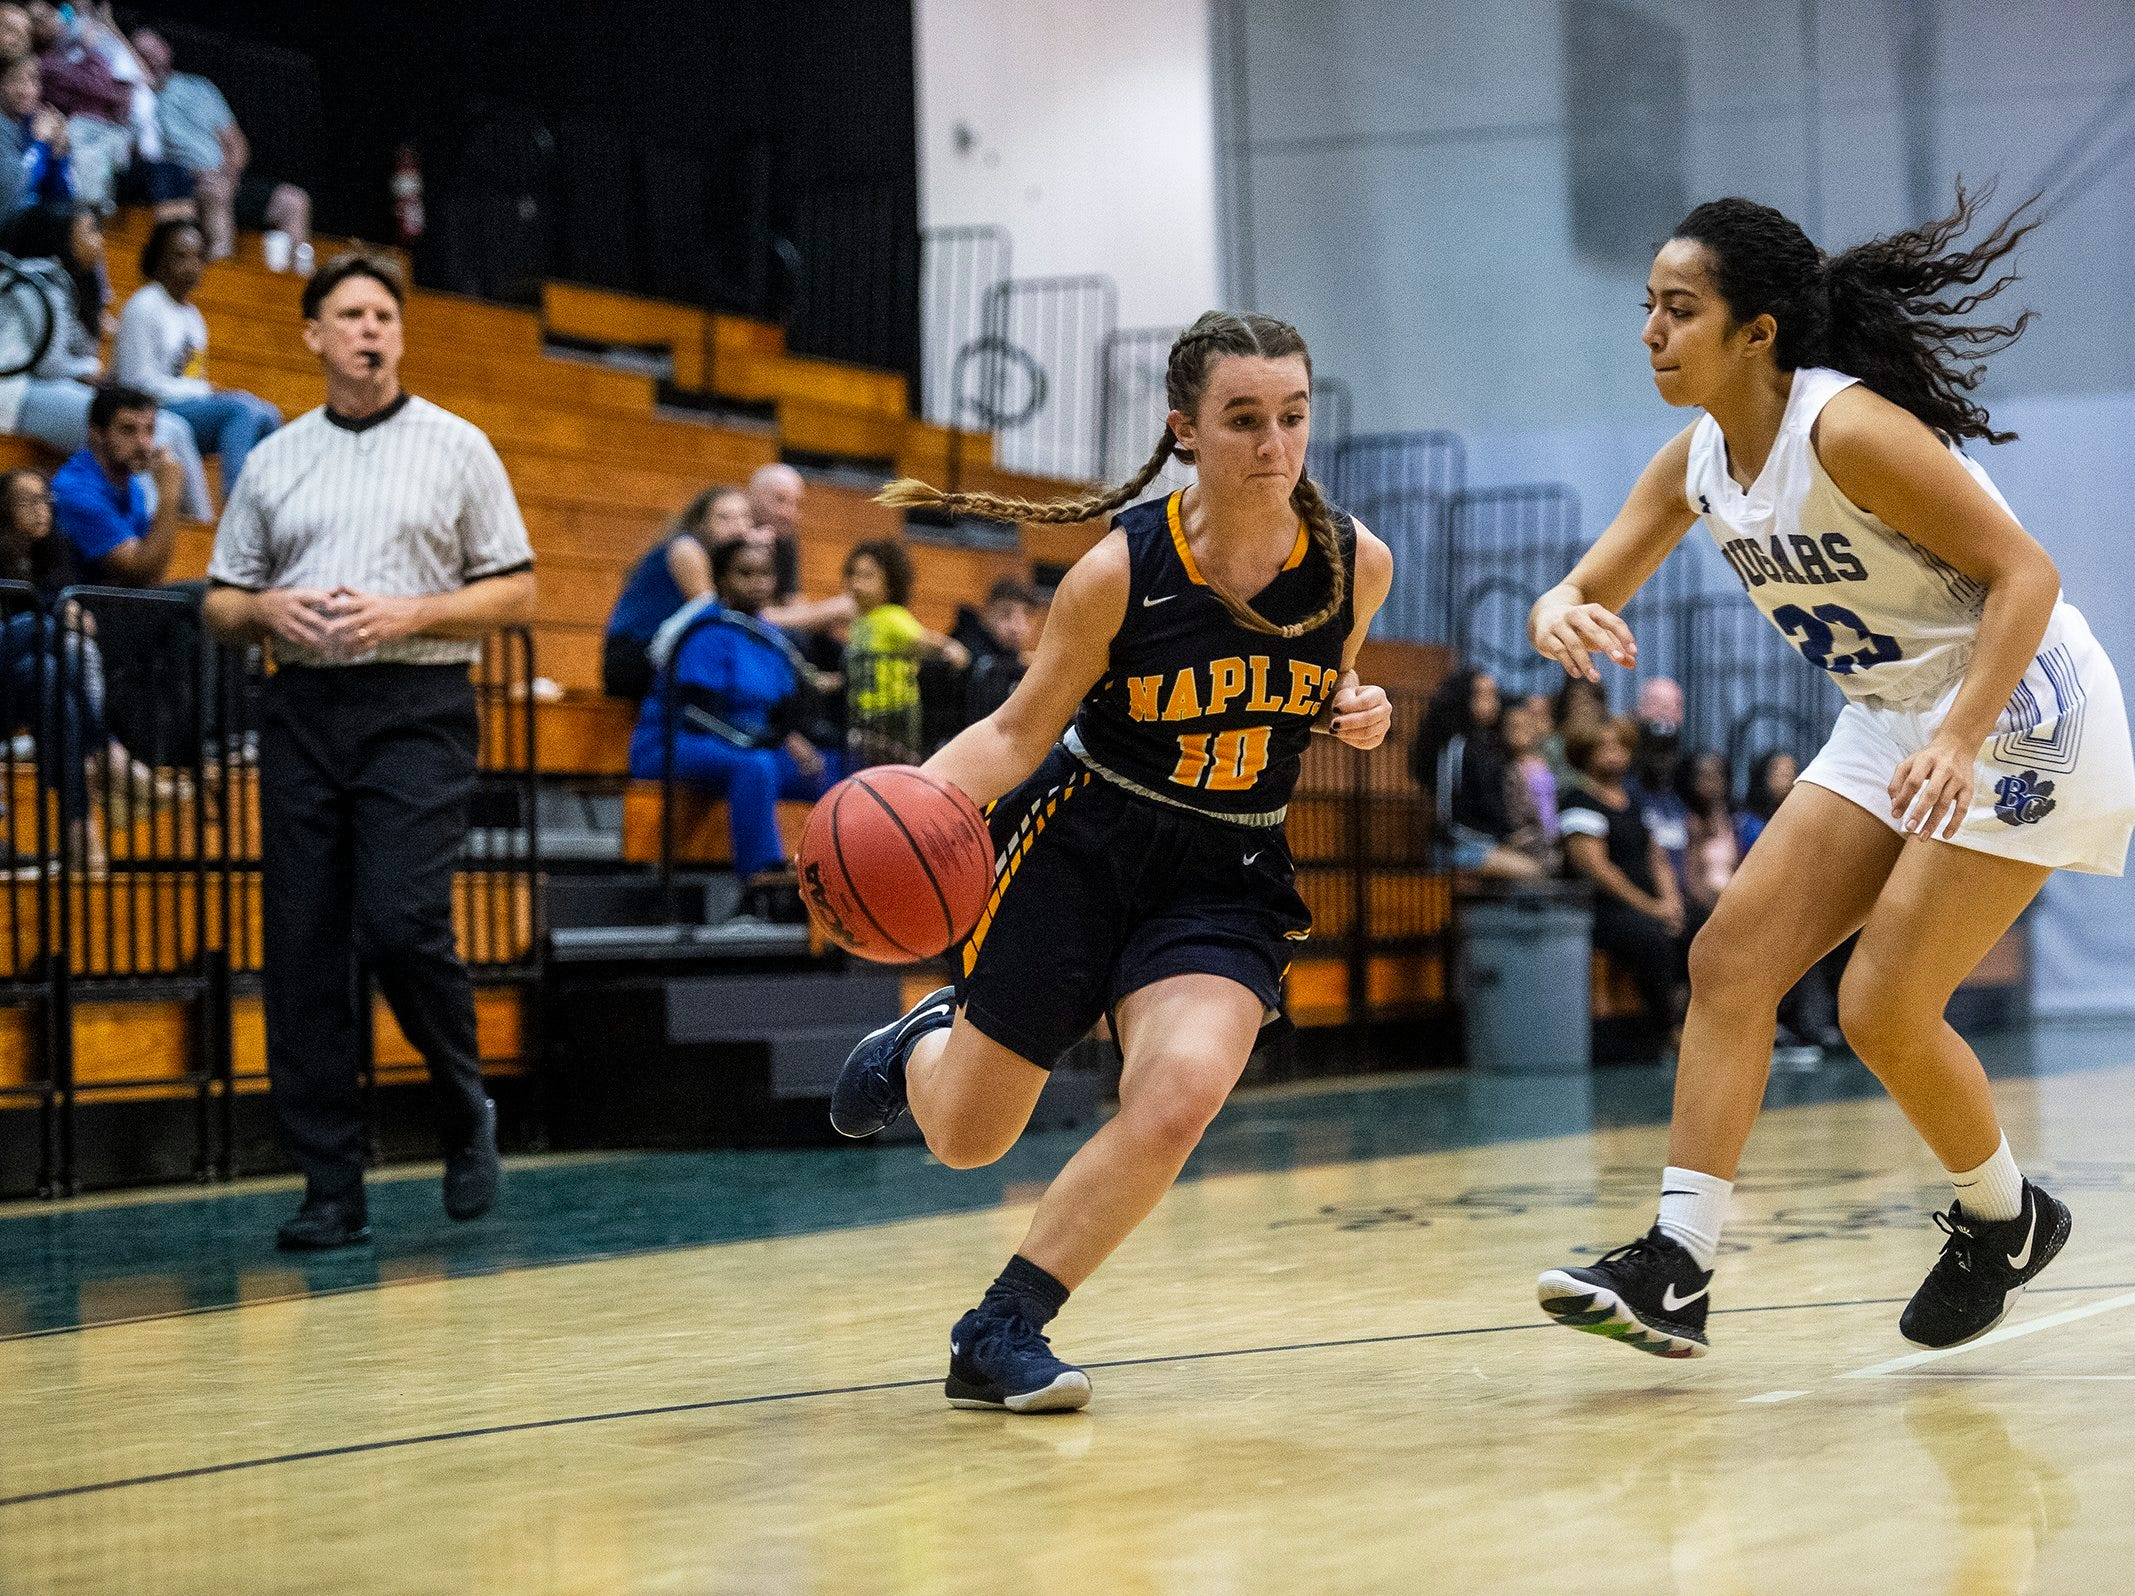 Naples High School's Sydney Zerbe takes the ball down court during the Class 7A-District 12 Championship against Barron Collier High School in Naples, Fla., on Friday, Feb. 8, 2019.